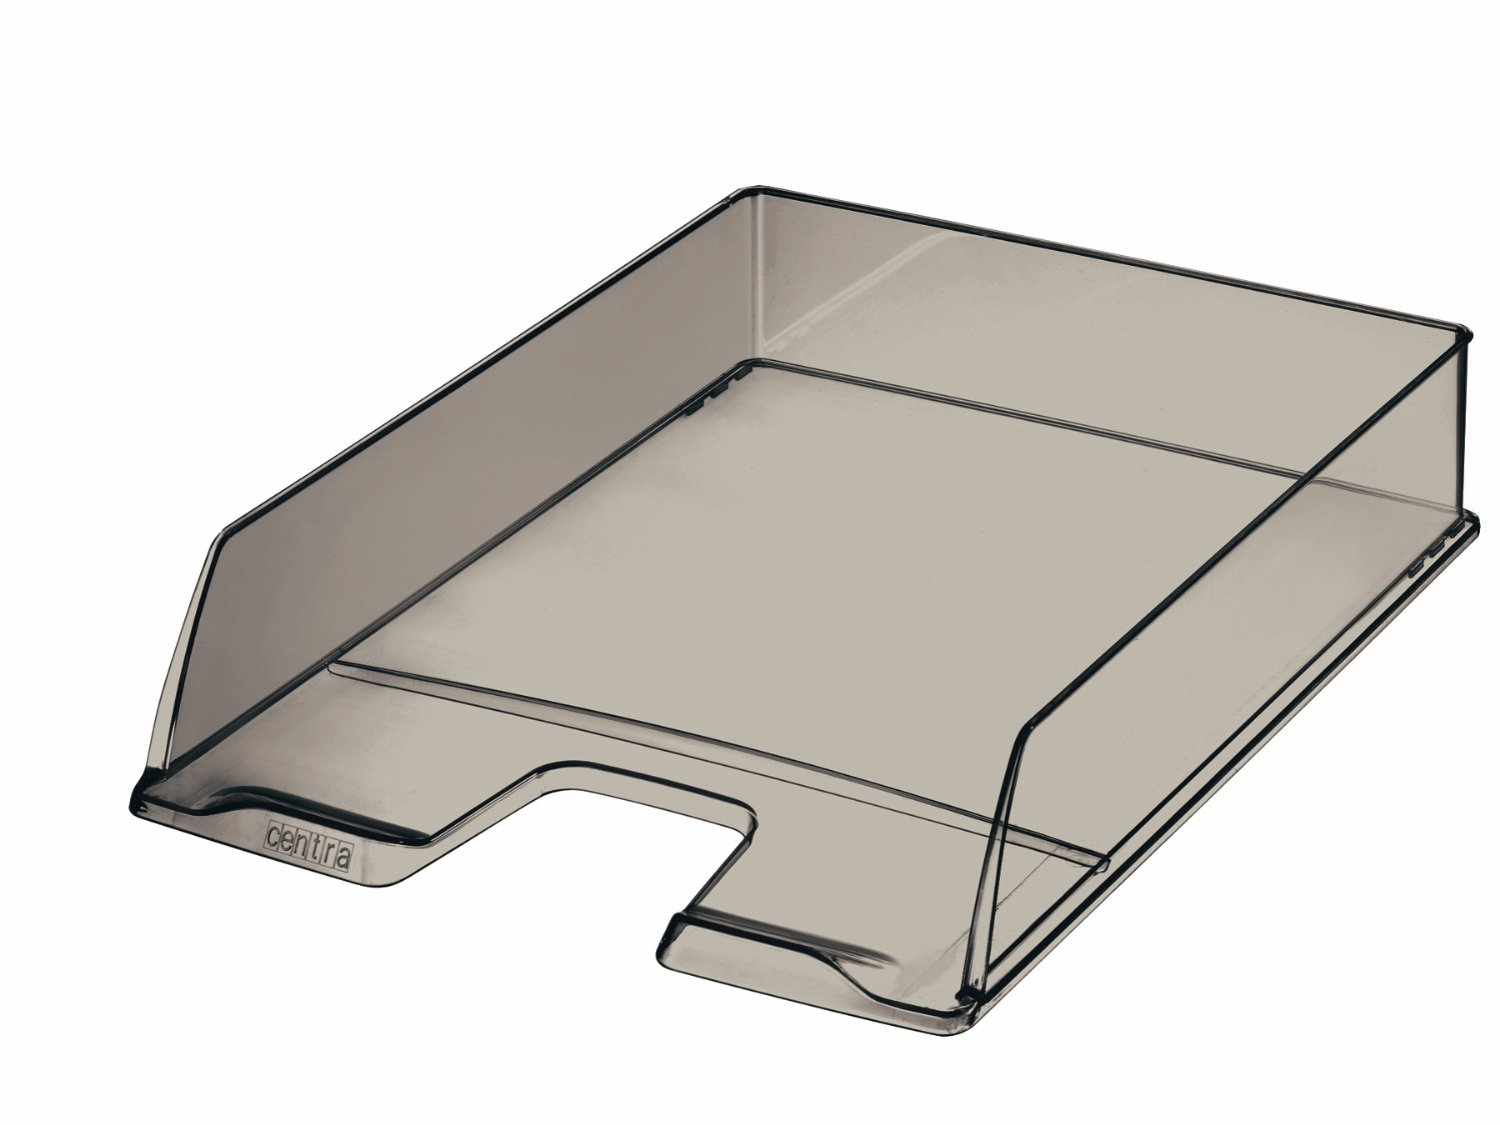 Centra A4 Letter Tray - Smoked Transparent